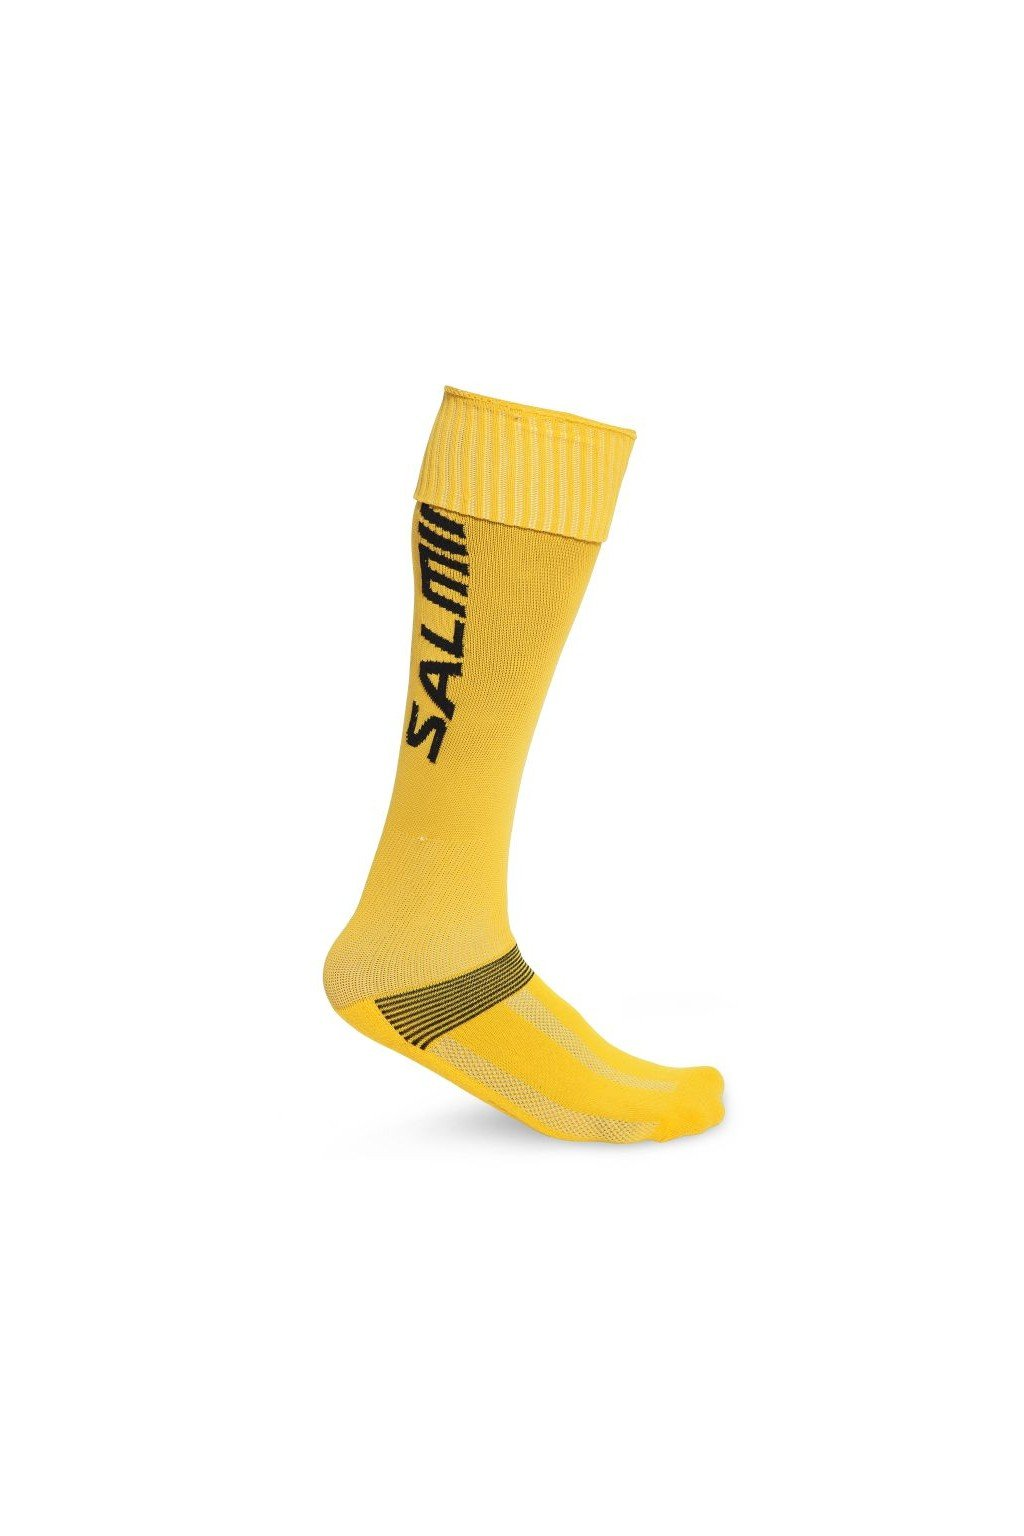 salming coolfeel team sock long yellow 43 46